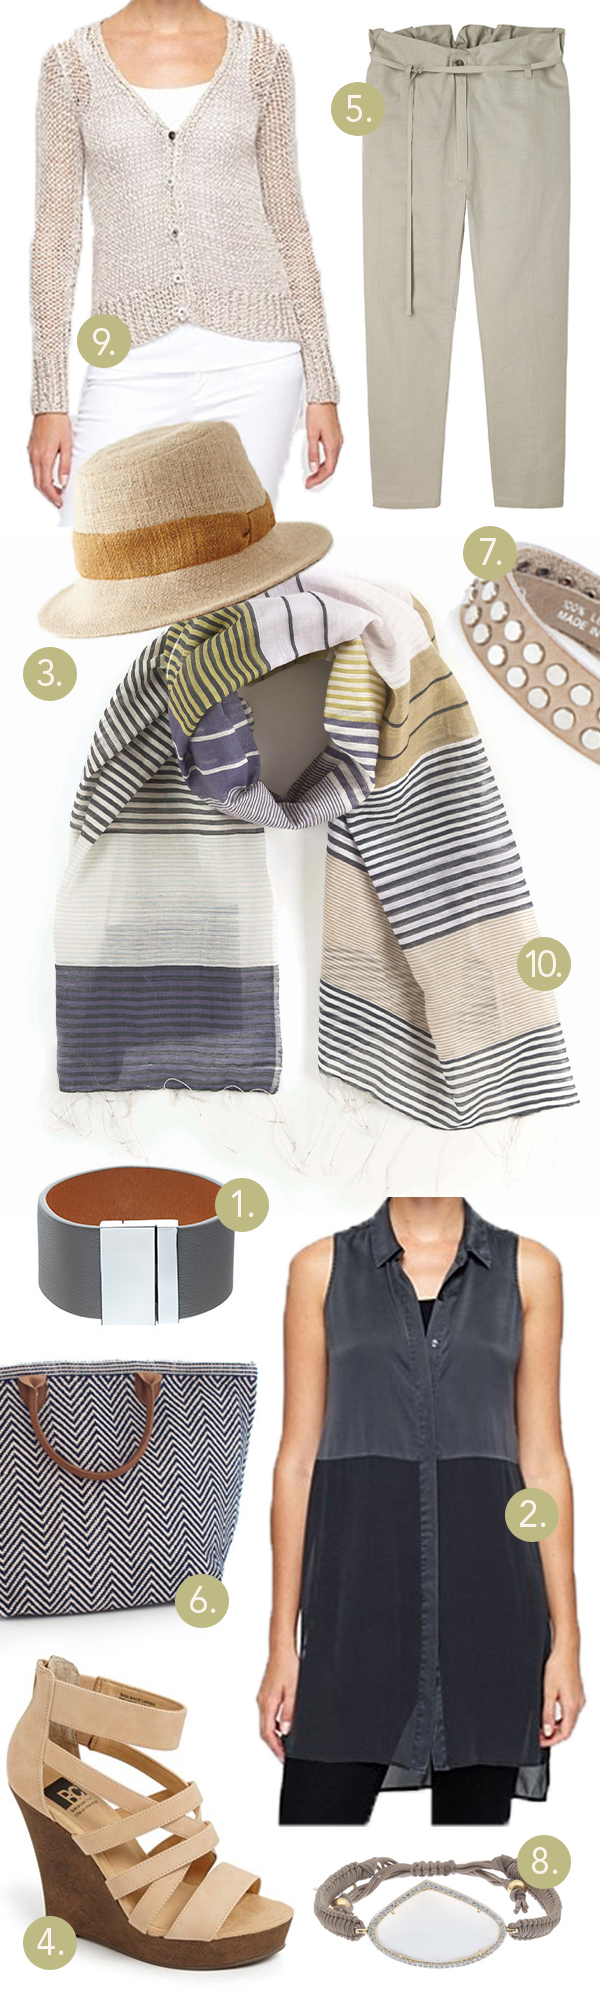 Pine Cone Hill Chesapeake scarf le tote cuff bracelets cropped pant fedora hat strappy wedge sandal Eileen fisher sweater top